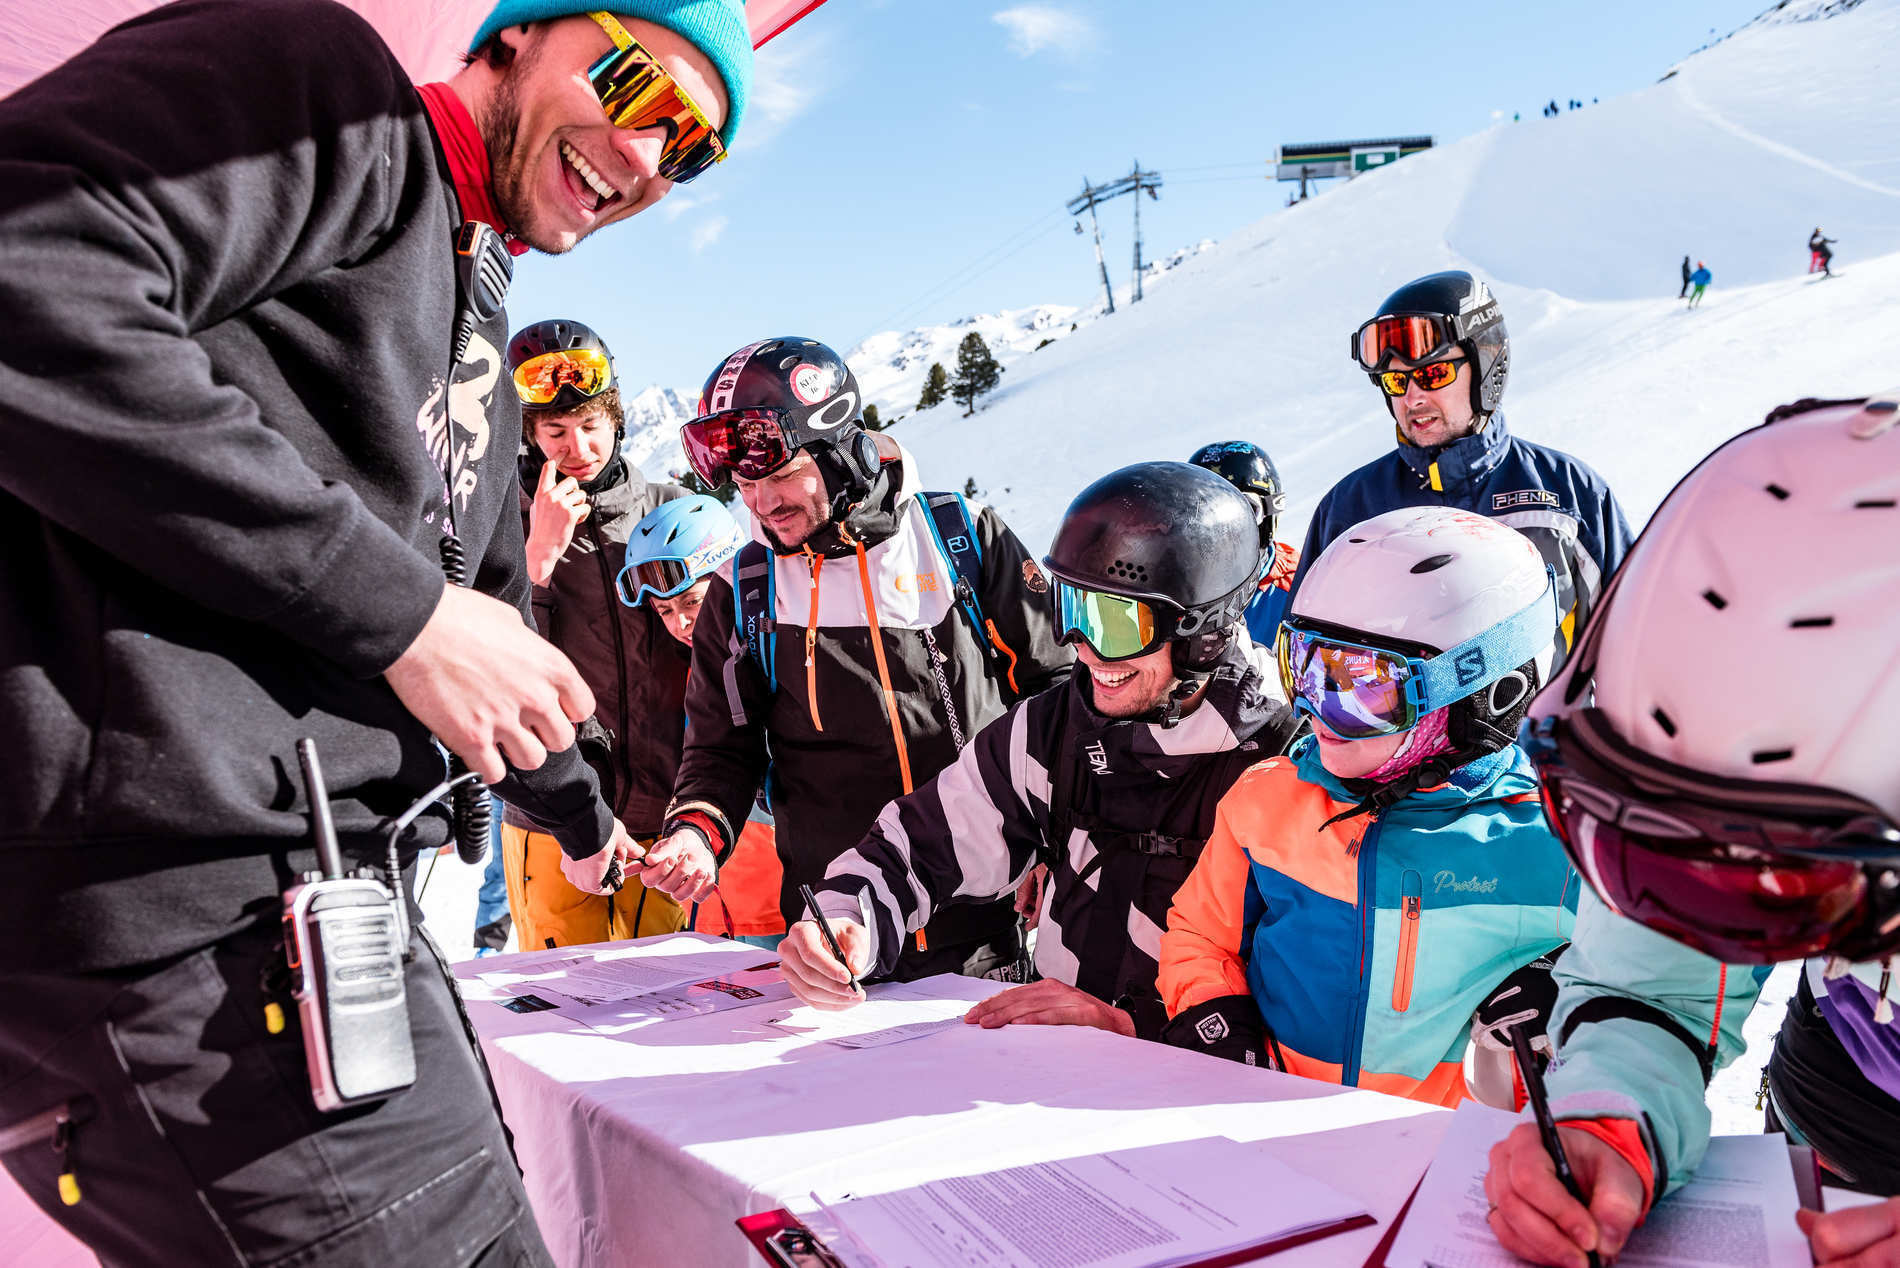 web obergurgl 08 03 2019 lifestyle fs sb christian riefenberg qparks 2